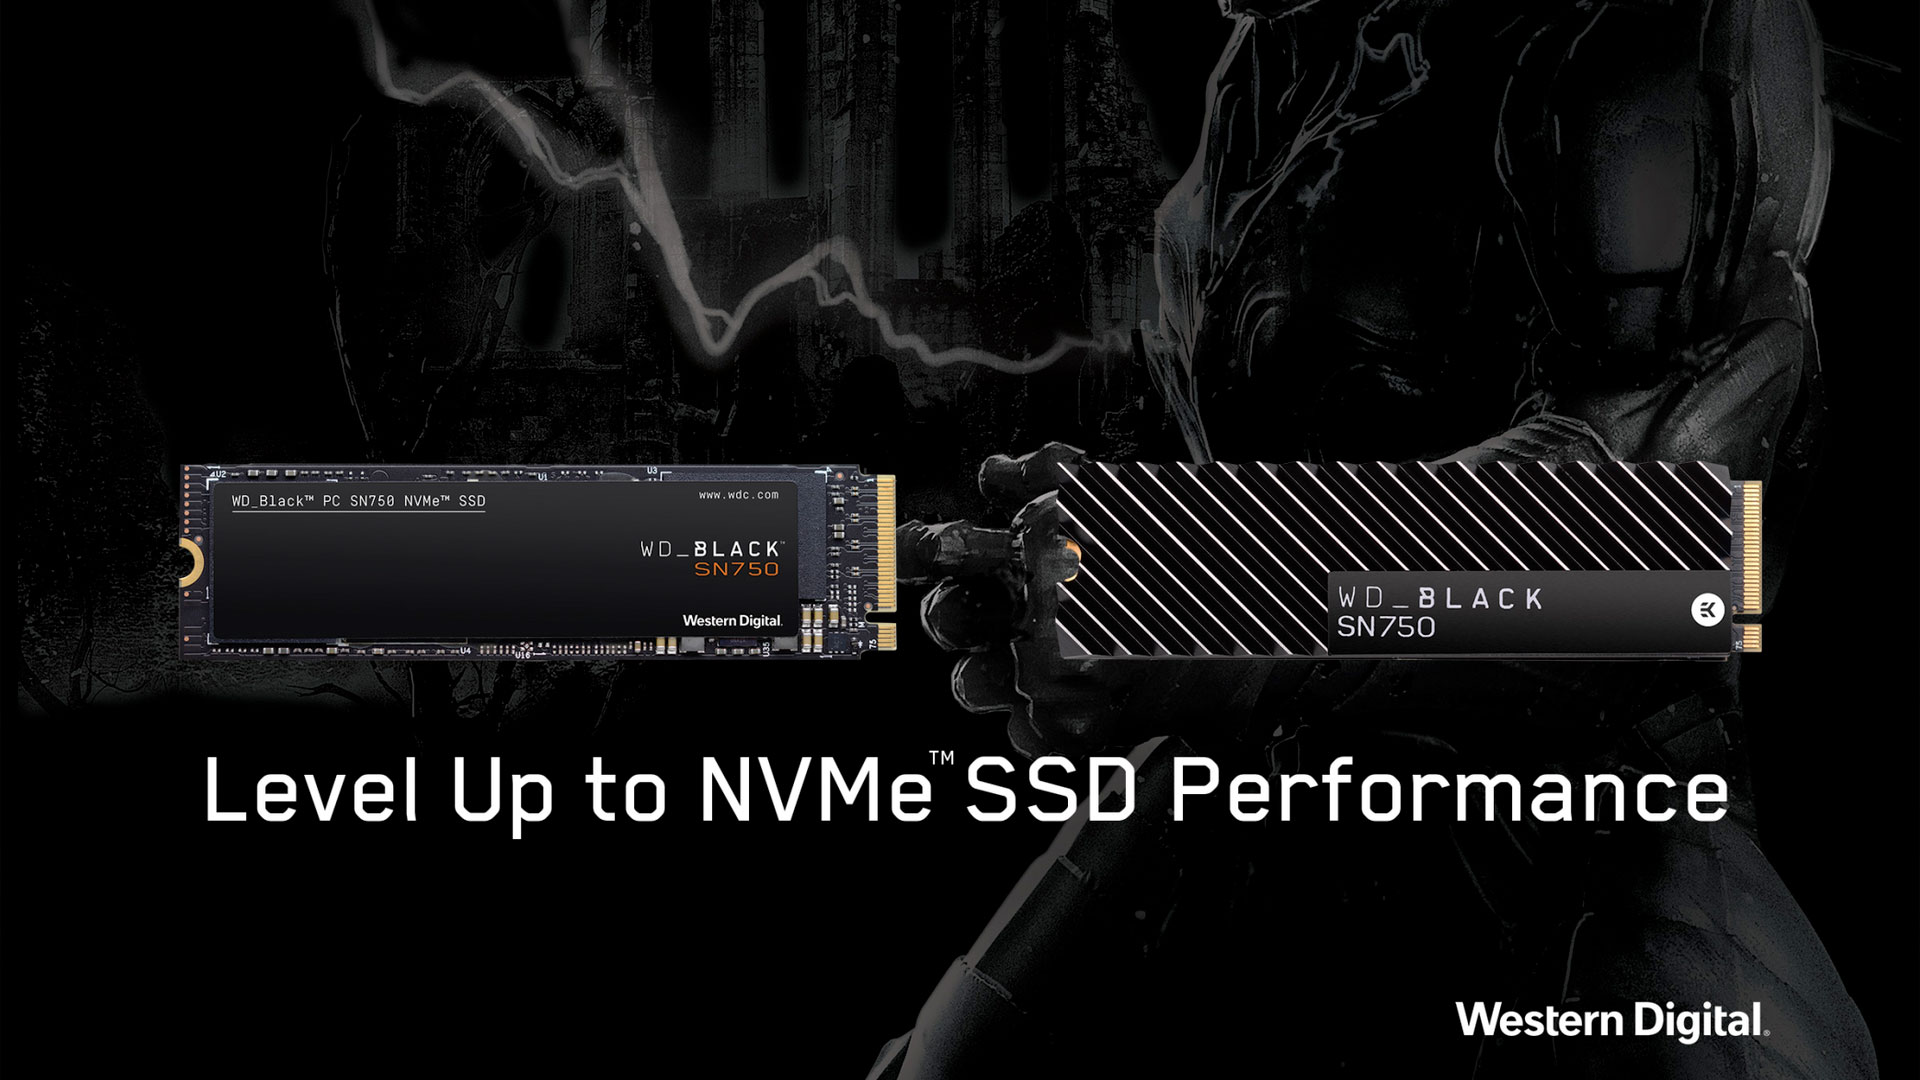 WD announces the Black SN750 NVMe PCIe M.2 SSD with read speeds of up to 3.4GB/s